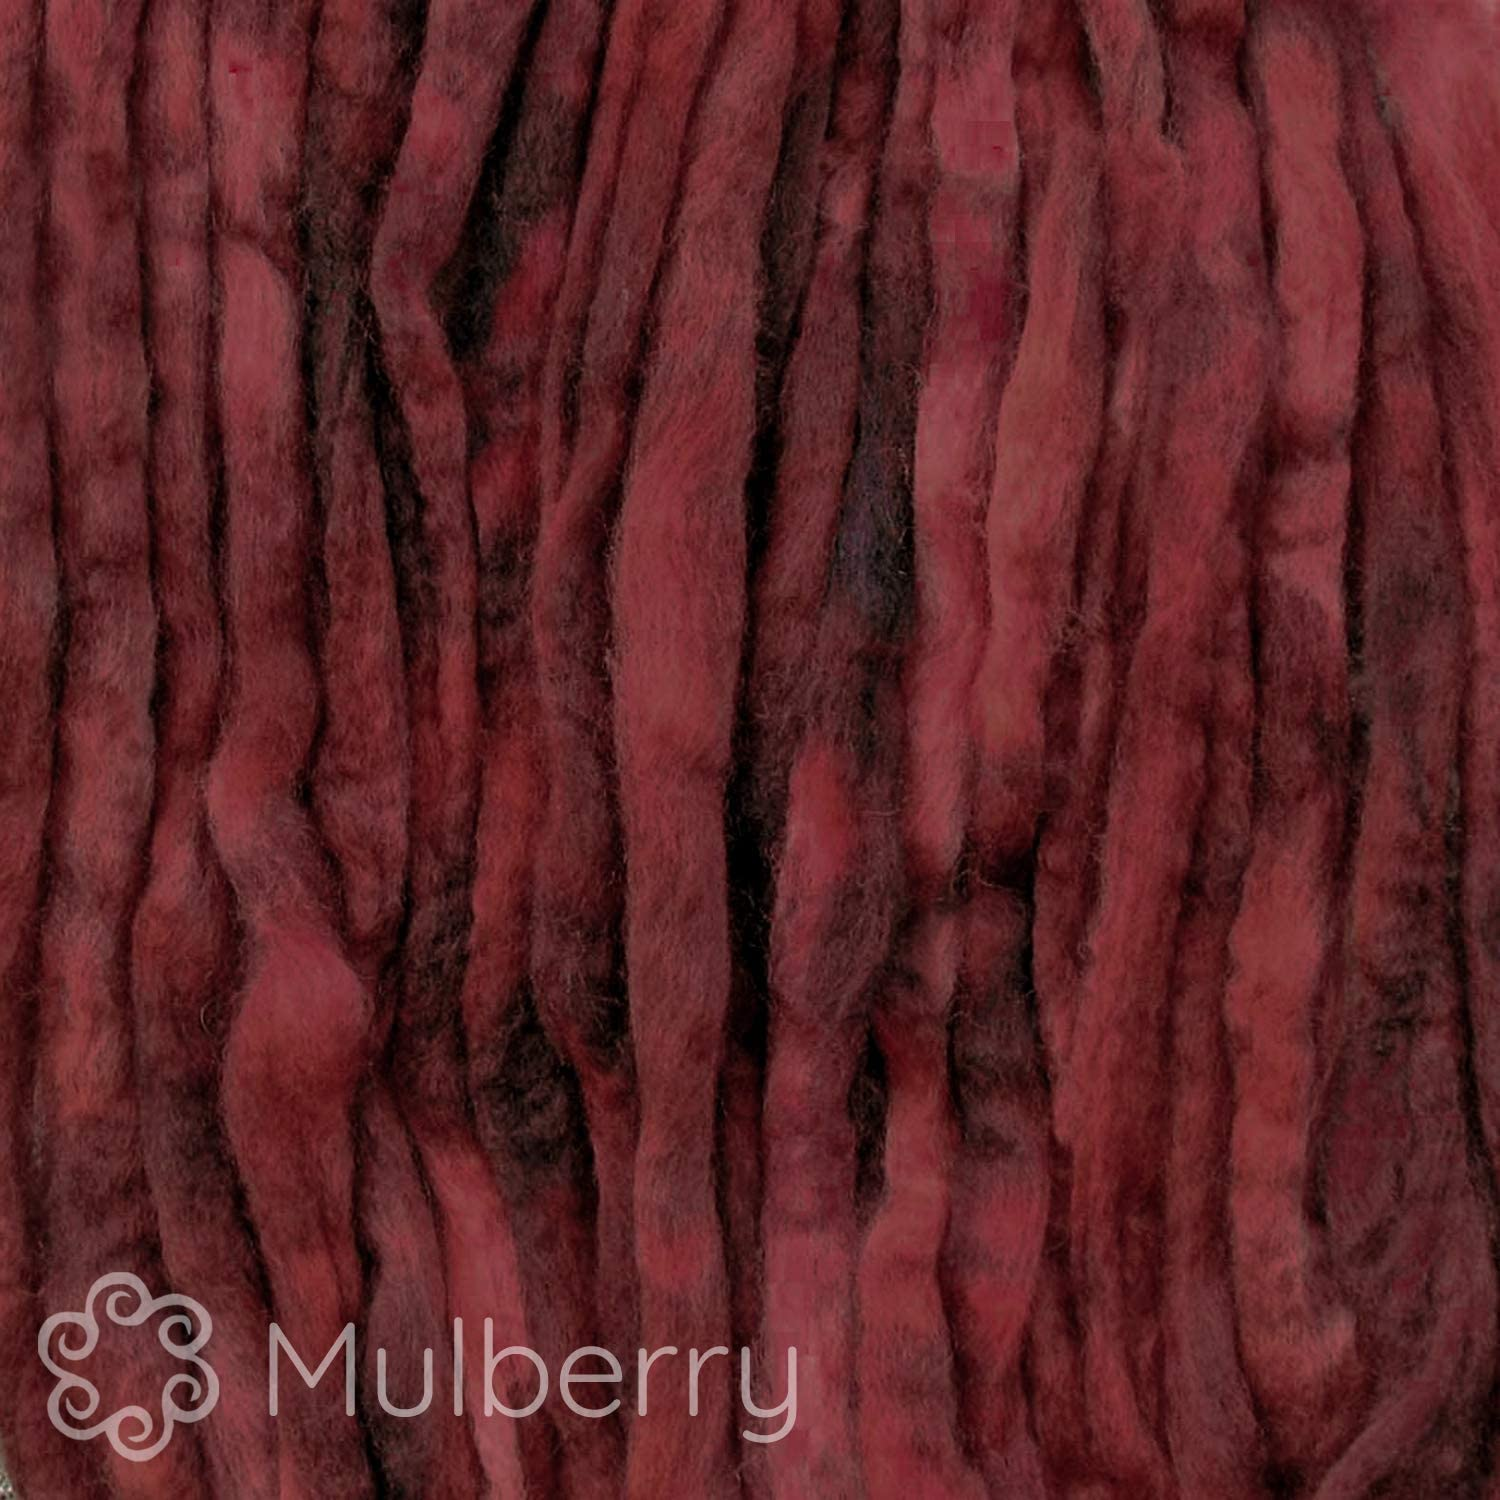 Artisanal Craft Fiber ideal for Felting Wool Roving Hand Dyed Wall Hangings and Embellishments Super Soft BFL Combed Top Pre-Drafted for Easy Hand Spinning 4 Ounce Mahogany Weaving